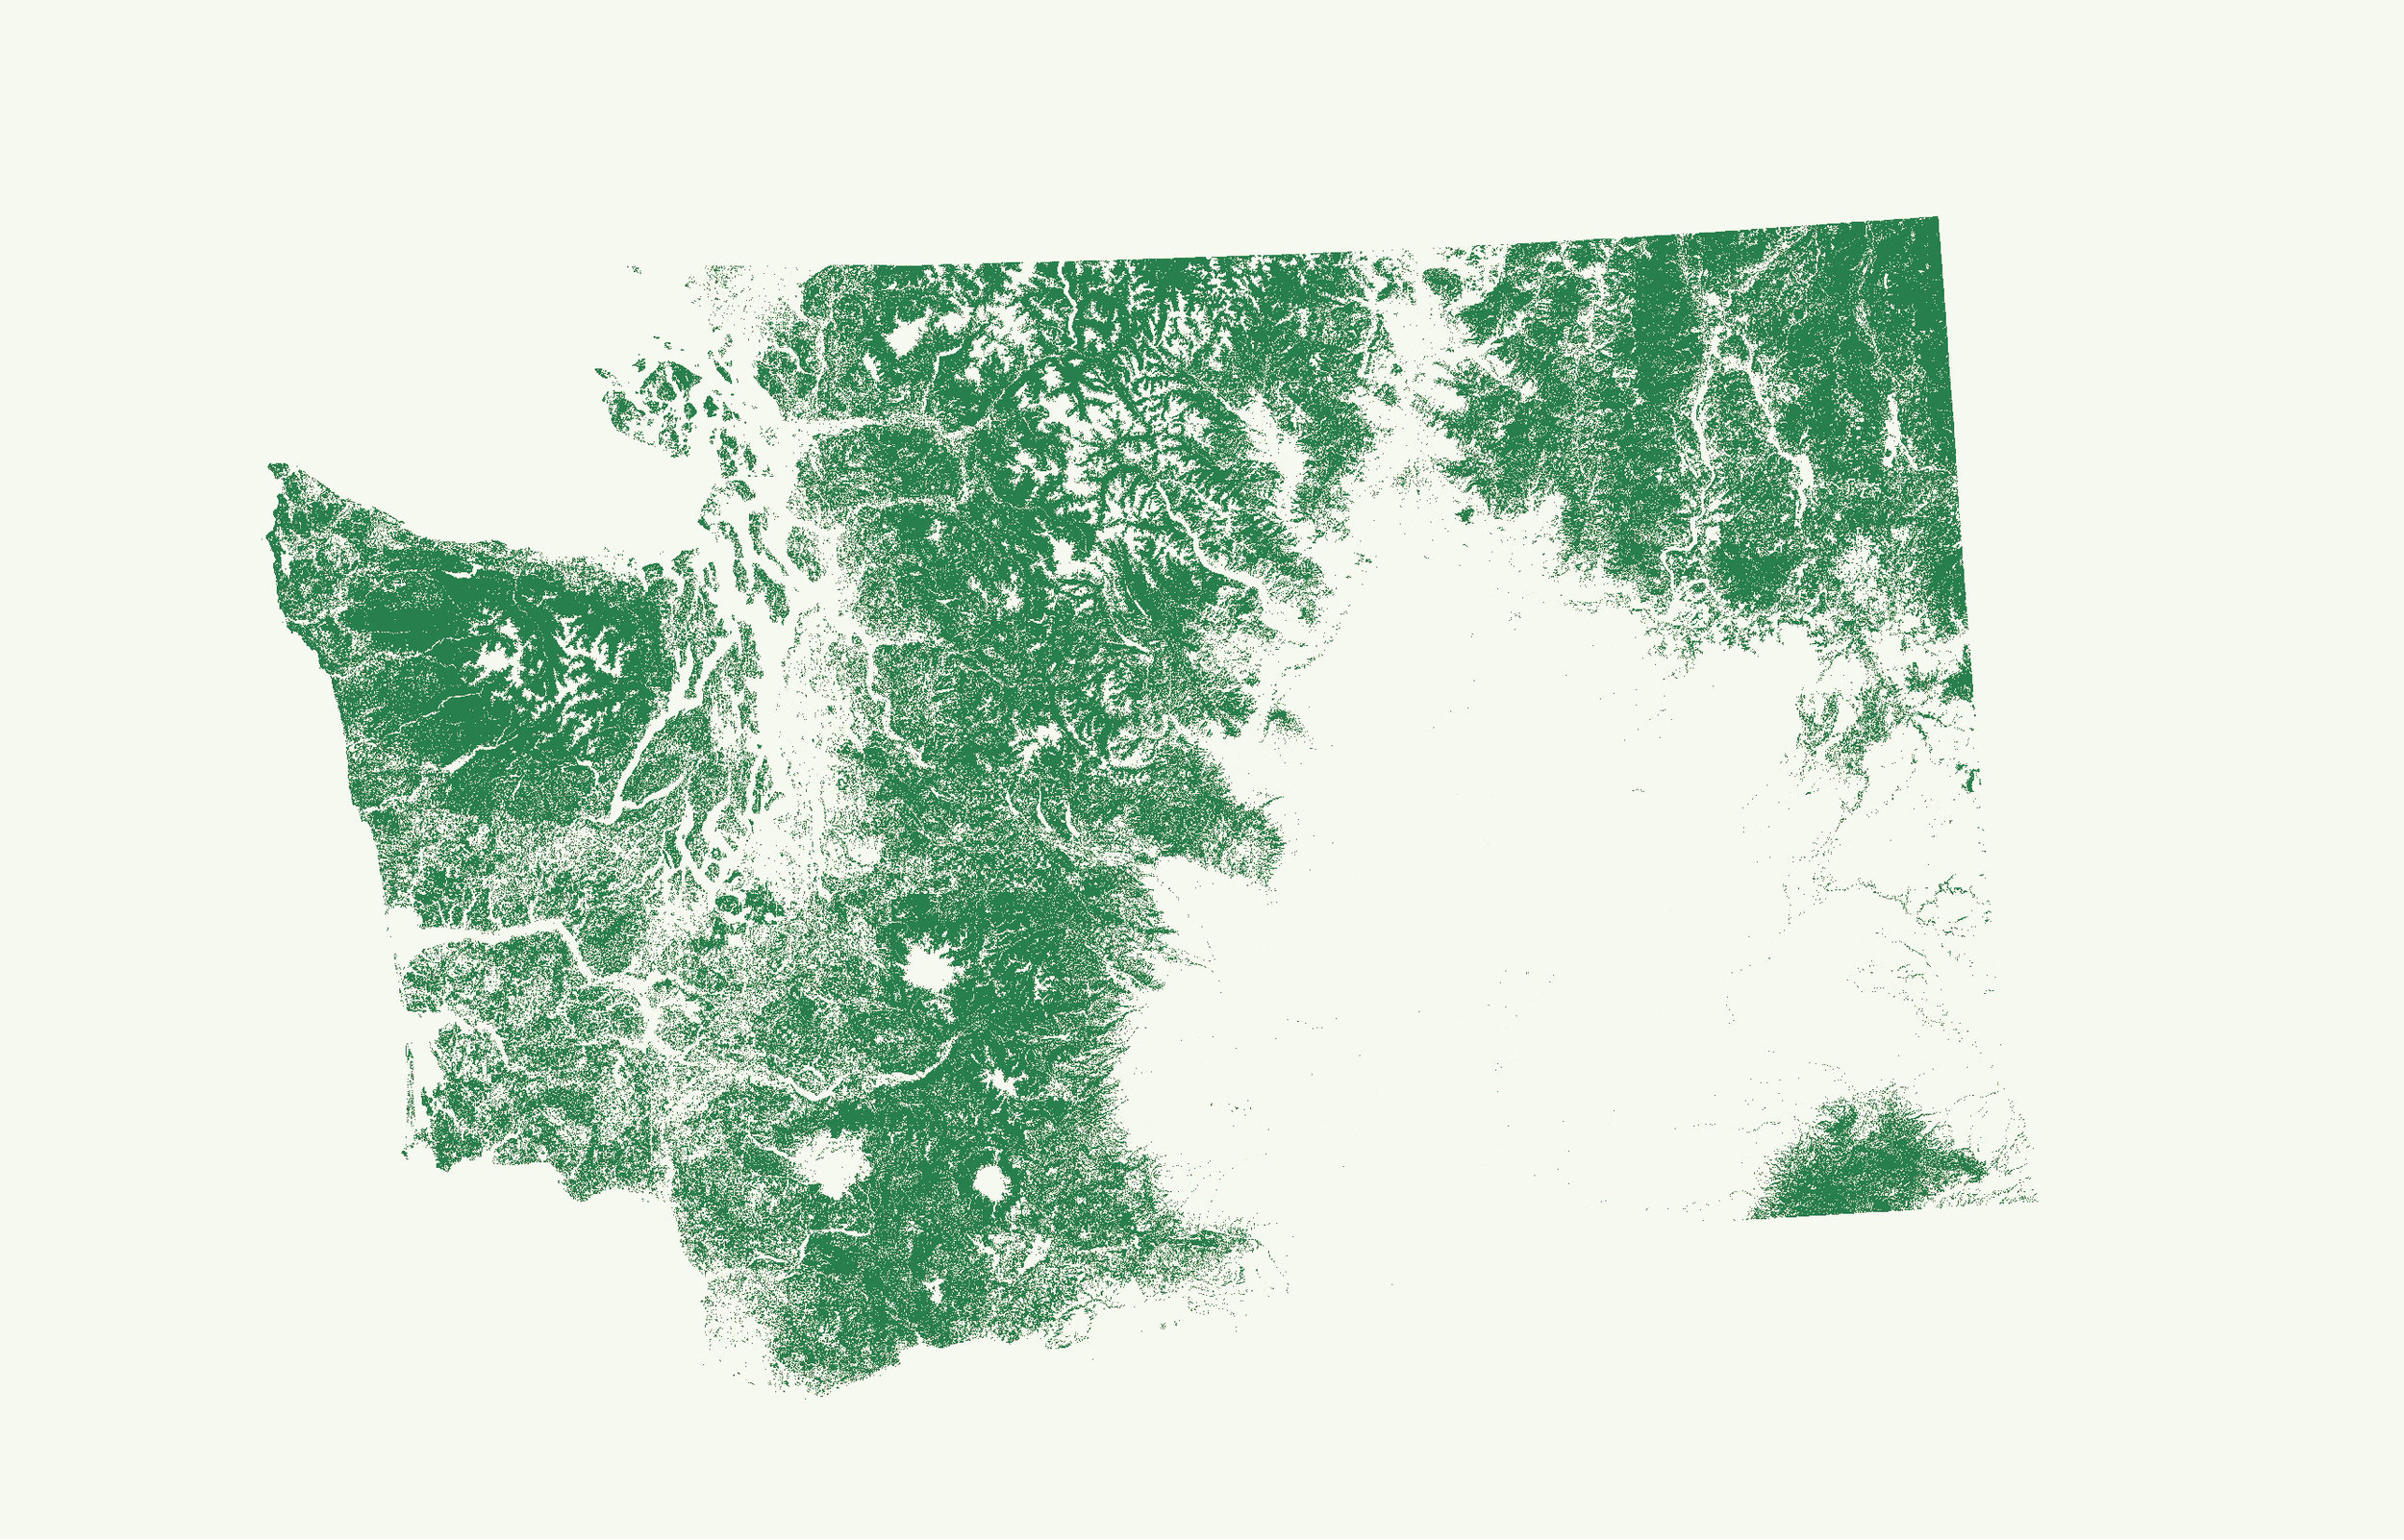 Half of Washington's land mass is covered in forest.